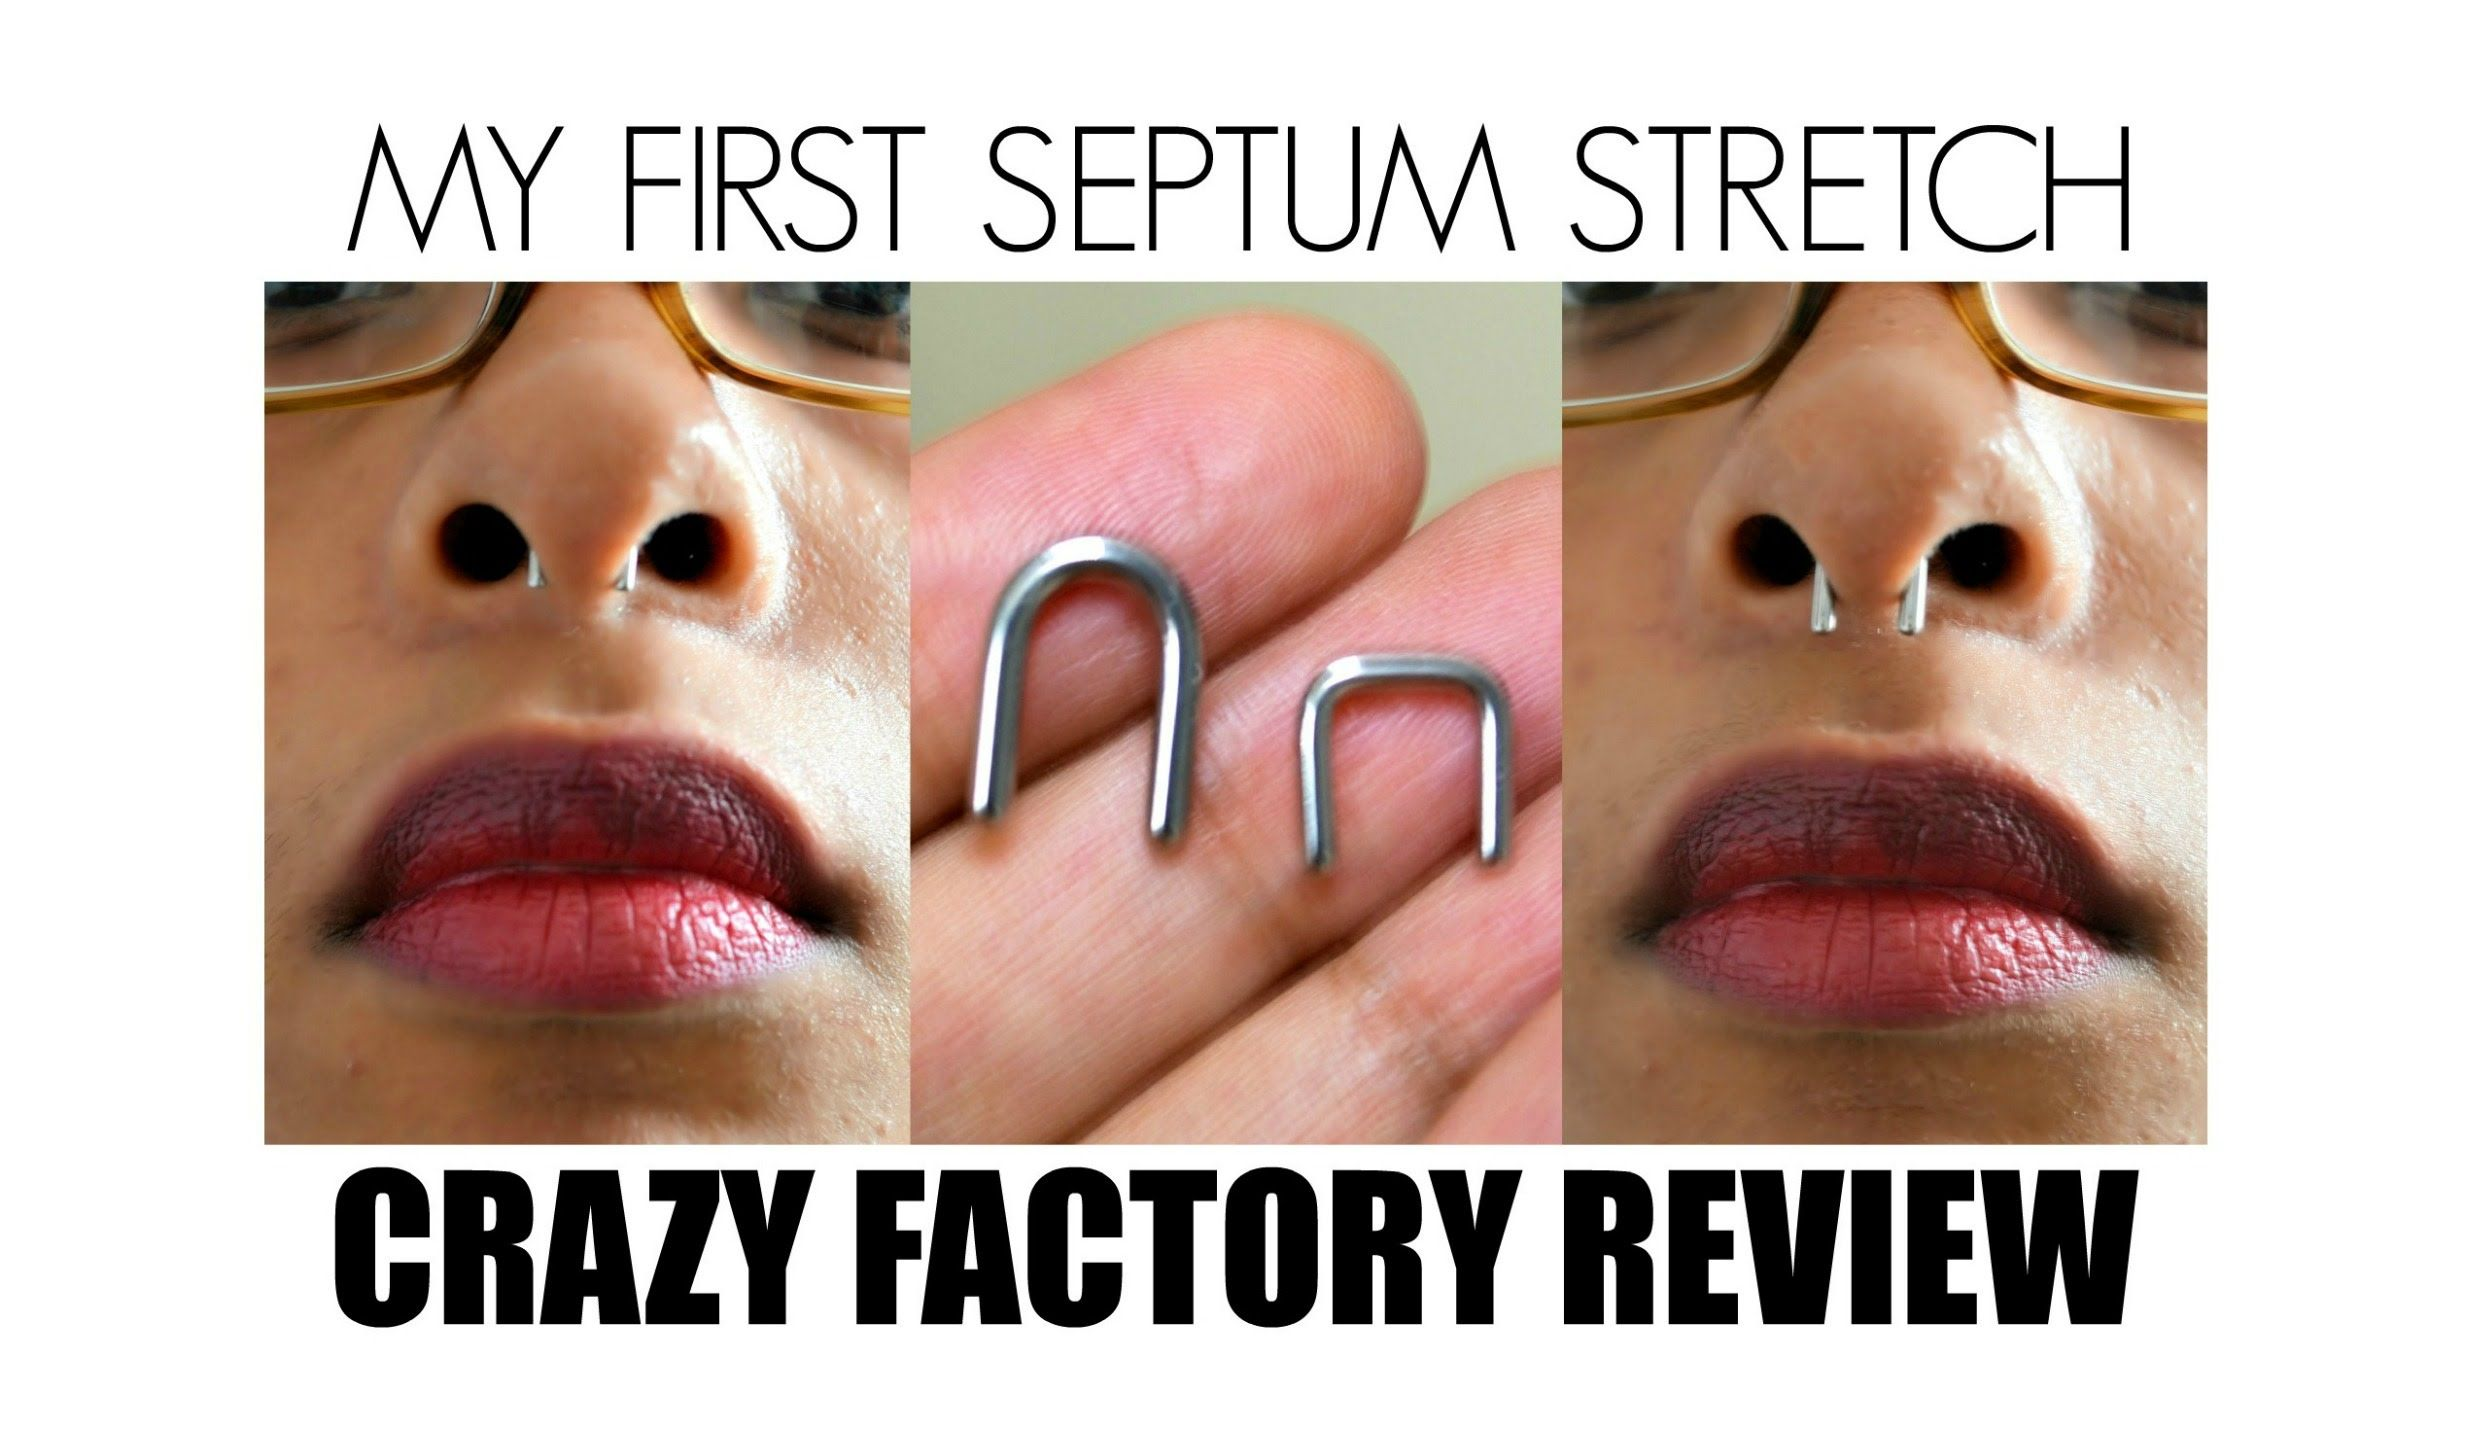 Healed up nose piercing  My First Septum Stretch and Crazy Factory Review  Piercings and